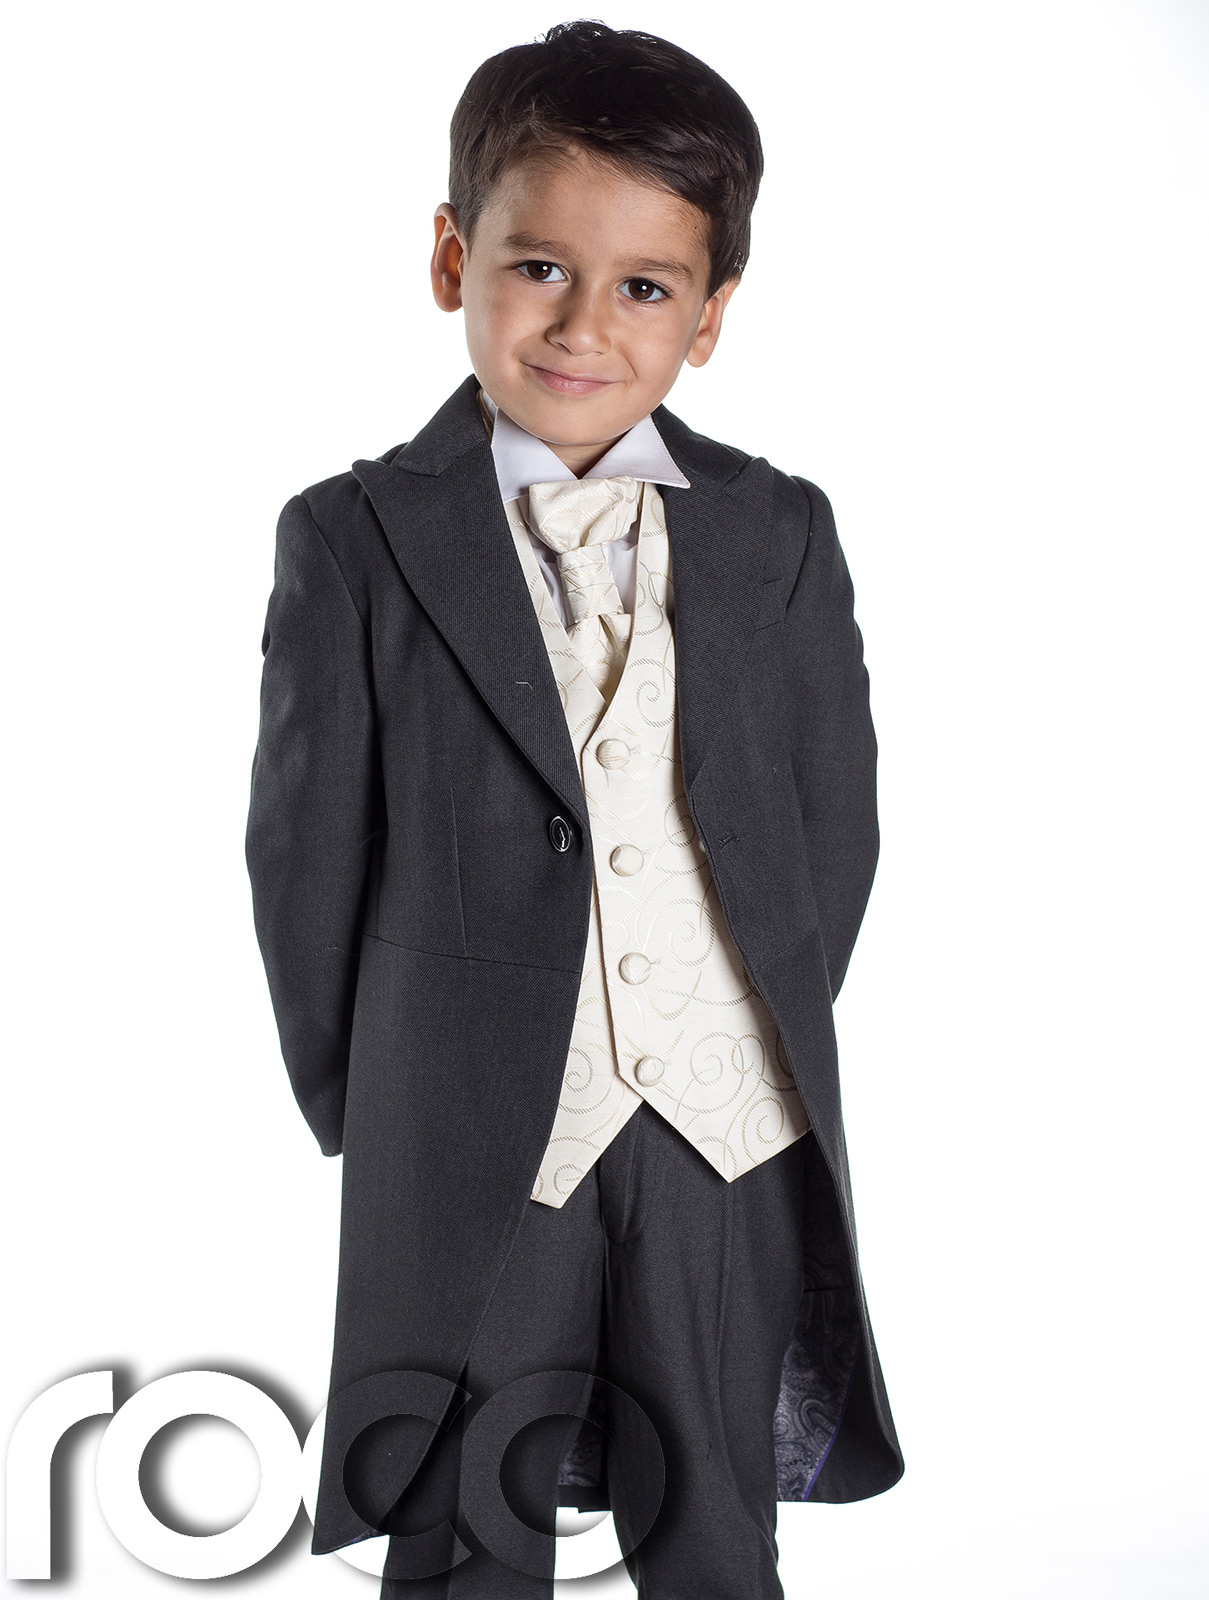 Boys' Suits. Showing 2 of 2 results that match your query. Search Product Result. Product - Boys Tuxedo Suit with Satin Notch Labels and a Black Neck Tie. Product Image. Product Title. Boys Tuxedo Suit with Satin Notch Labels and a Black Neck Tie. Price $ 98 - $ Product Title.